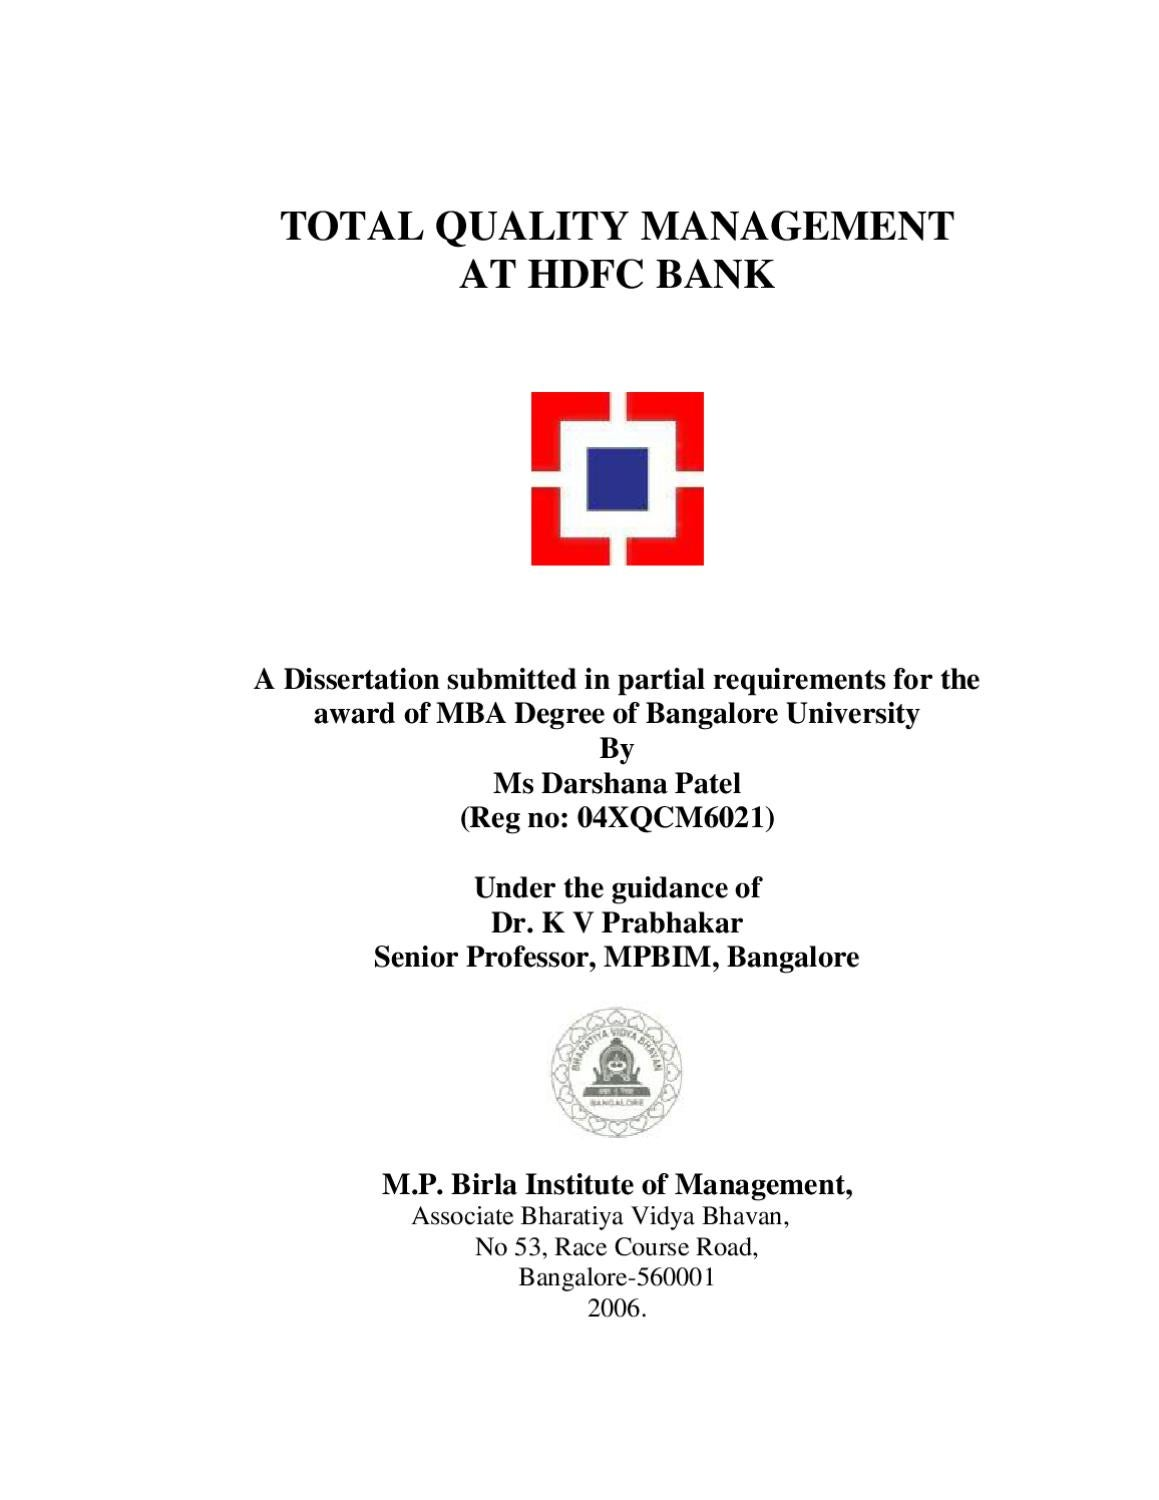 challenges for implementing total quality management in n challenges for implementing total quality management in n banks a study by sanjay gupta issuu